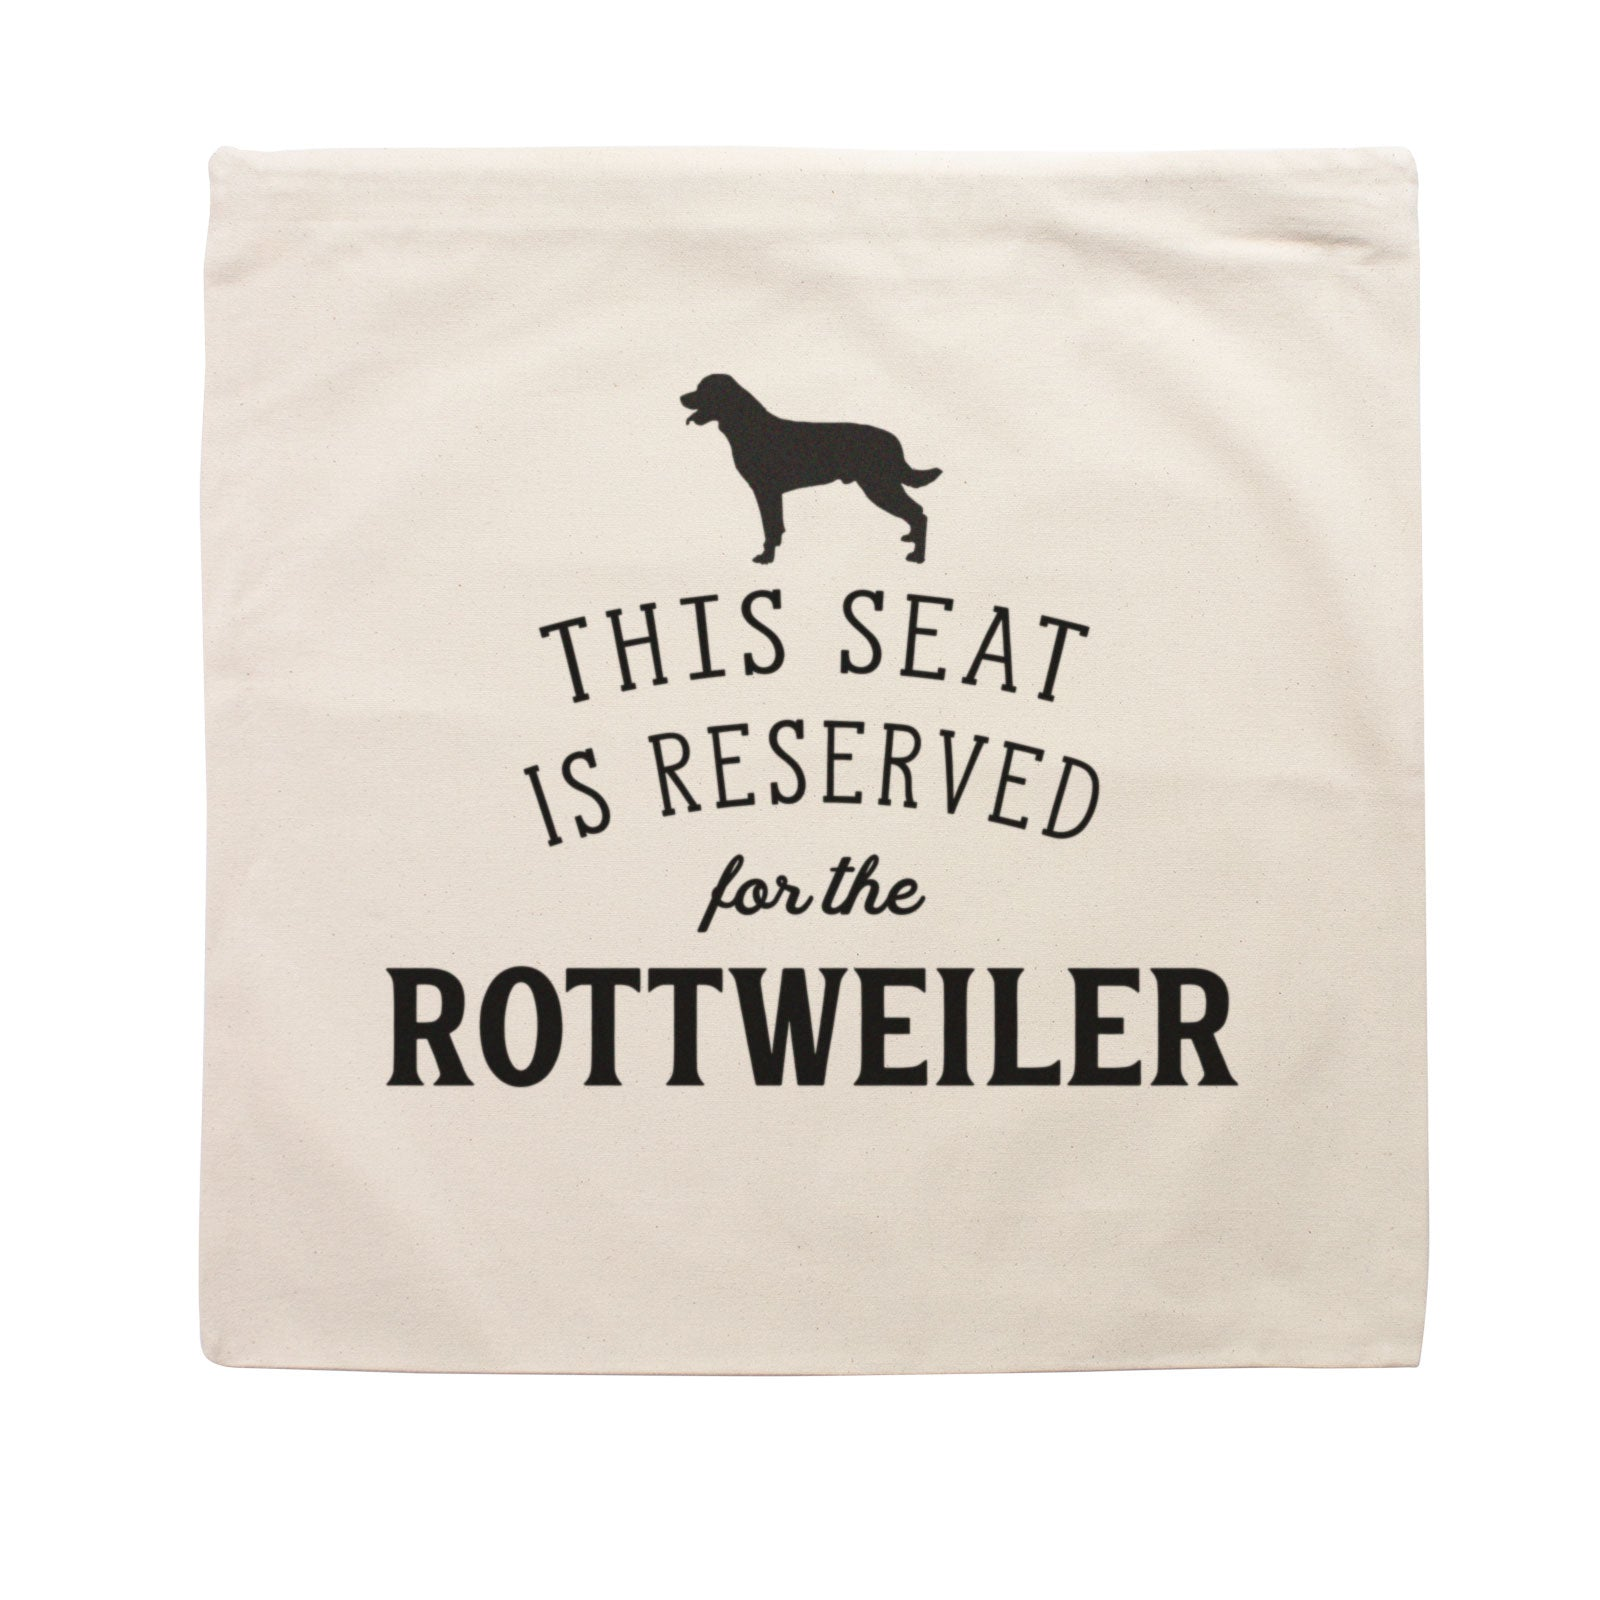 Reserved for the Rottweiler Cushion Cover